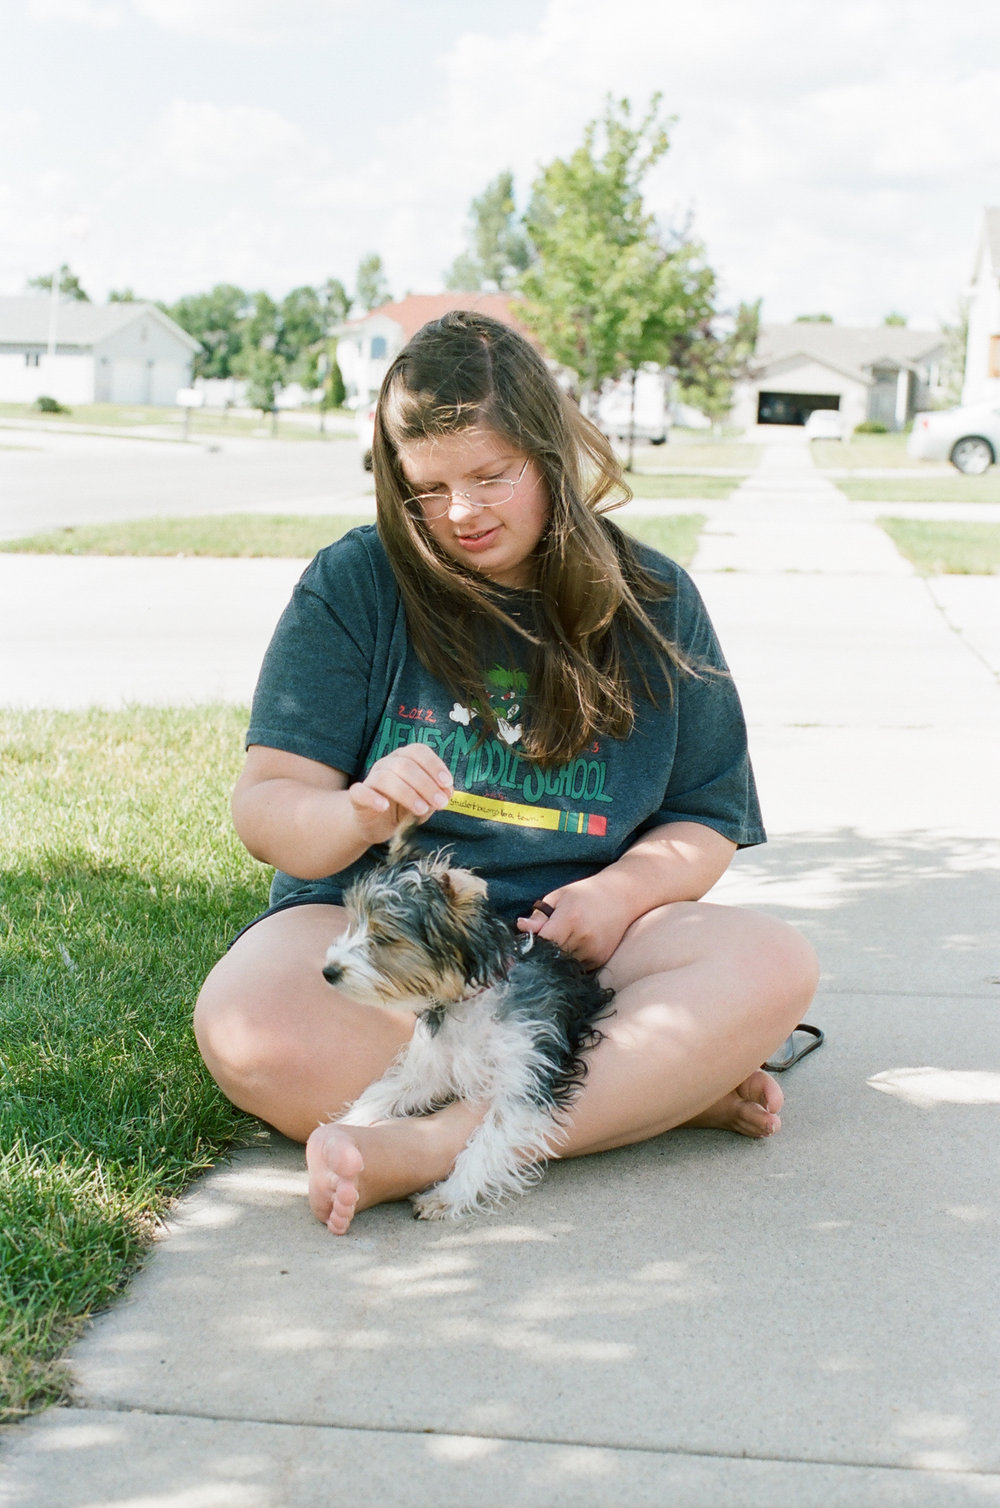 Teen and puppy on sidewalk